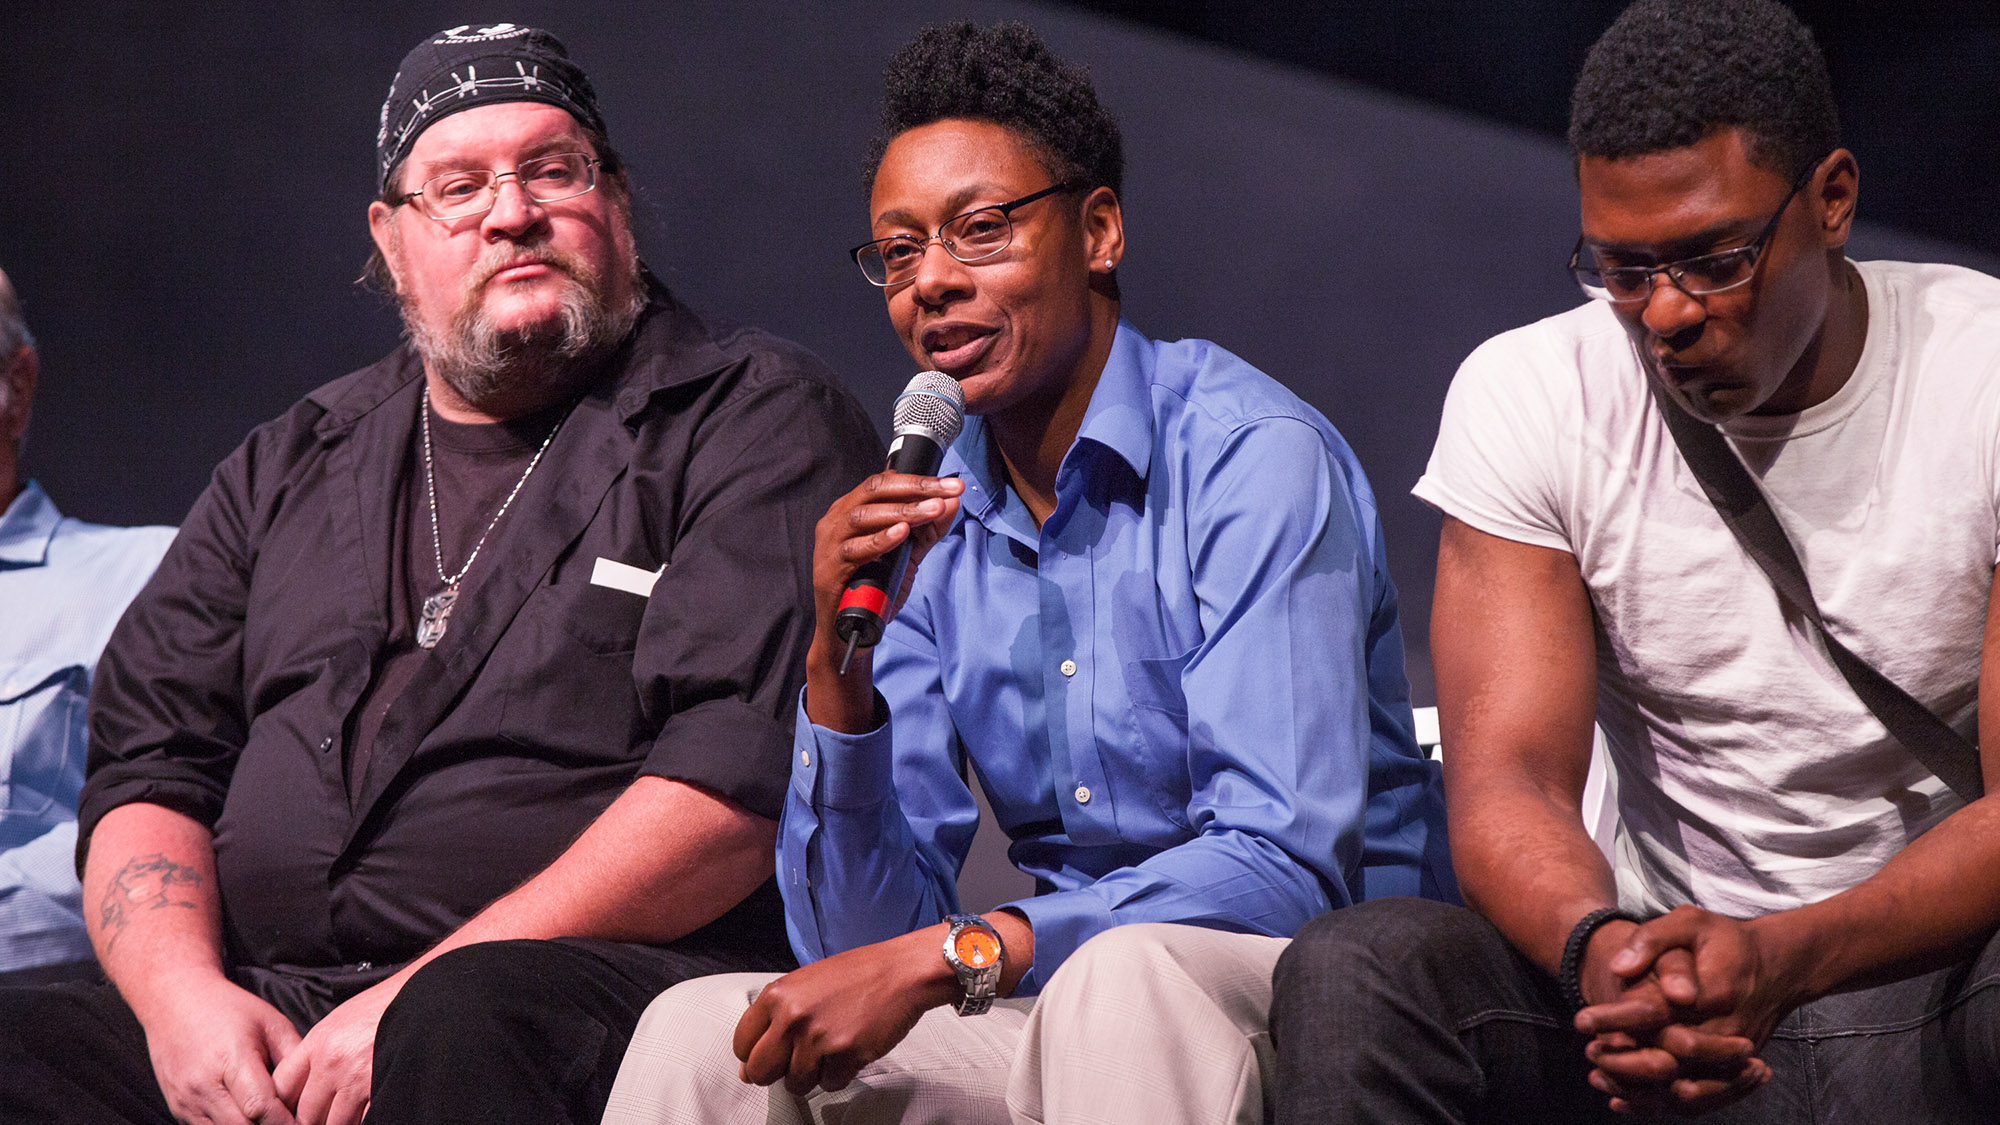 Katja Liebing/Courier - Veteran and PCC student Ronisha 'Mickey' Mitchell talks about her experiences while serving during TalkBack Tuesday at the Pasadena Playhouse on Tuesday, February 9, 2016.